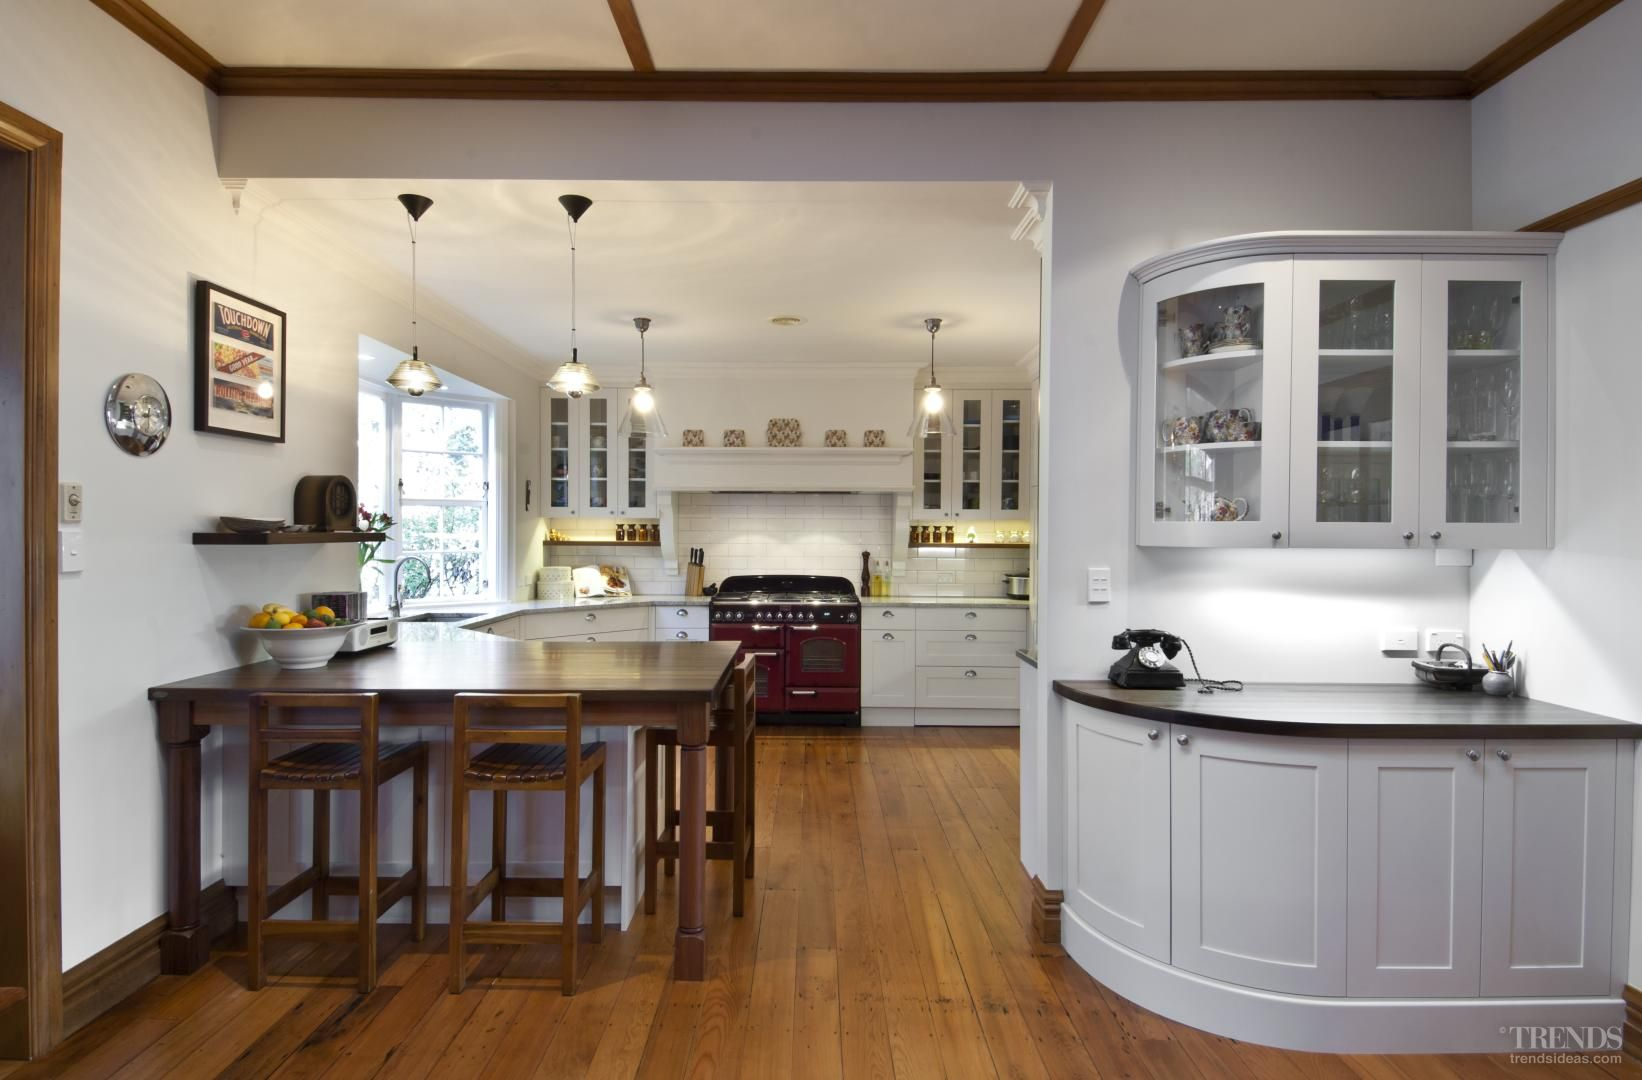 superb 1930S Kitchen Remodel #7: 1930s Kitchen Remodel Zitzat